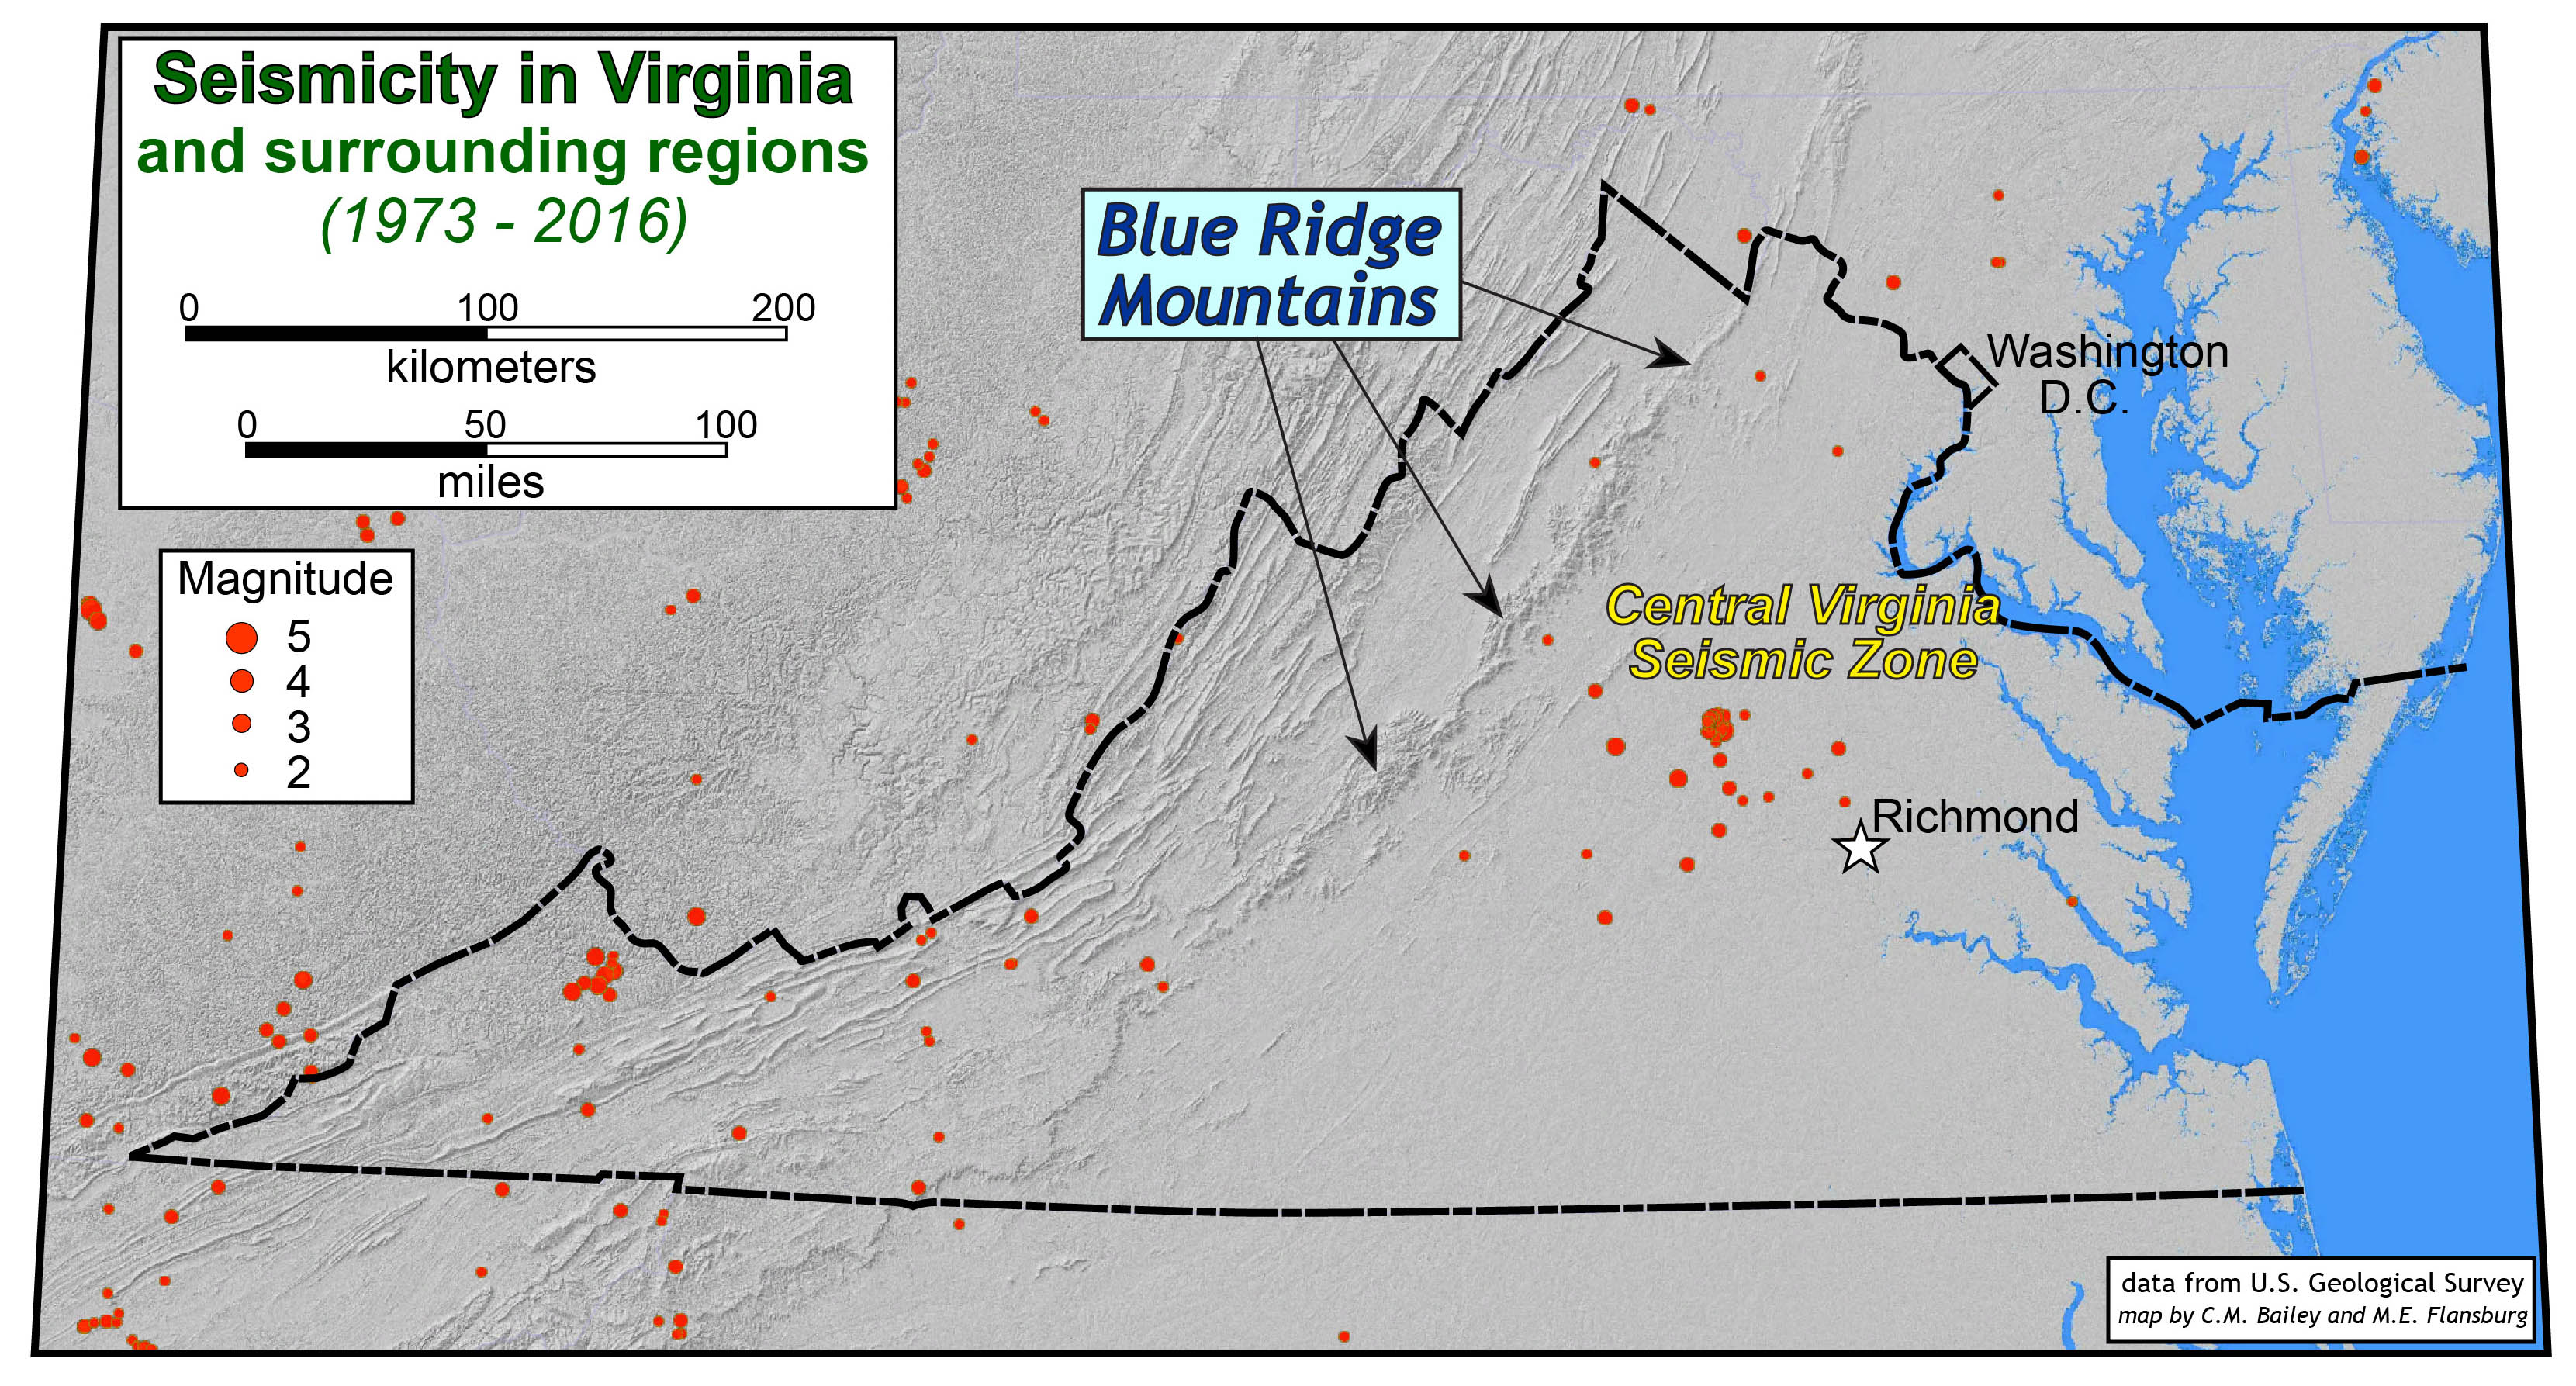 Central Virginia Map.Maps And Diagrams The Geology Of Virginia